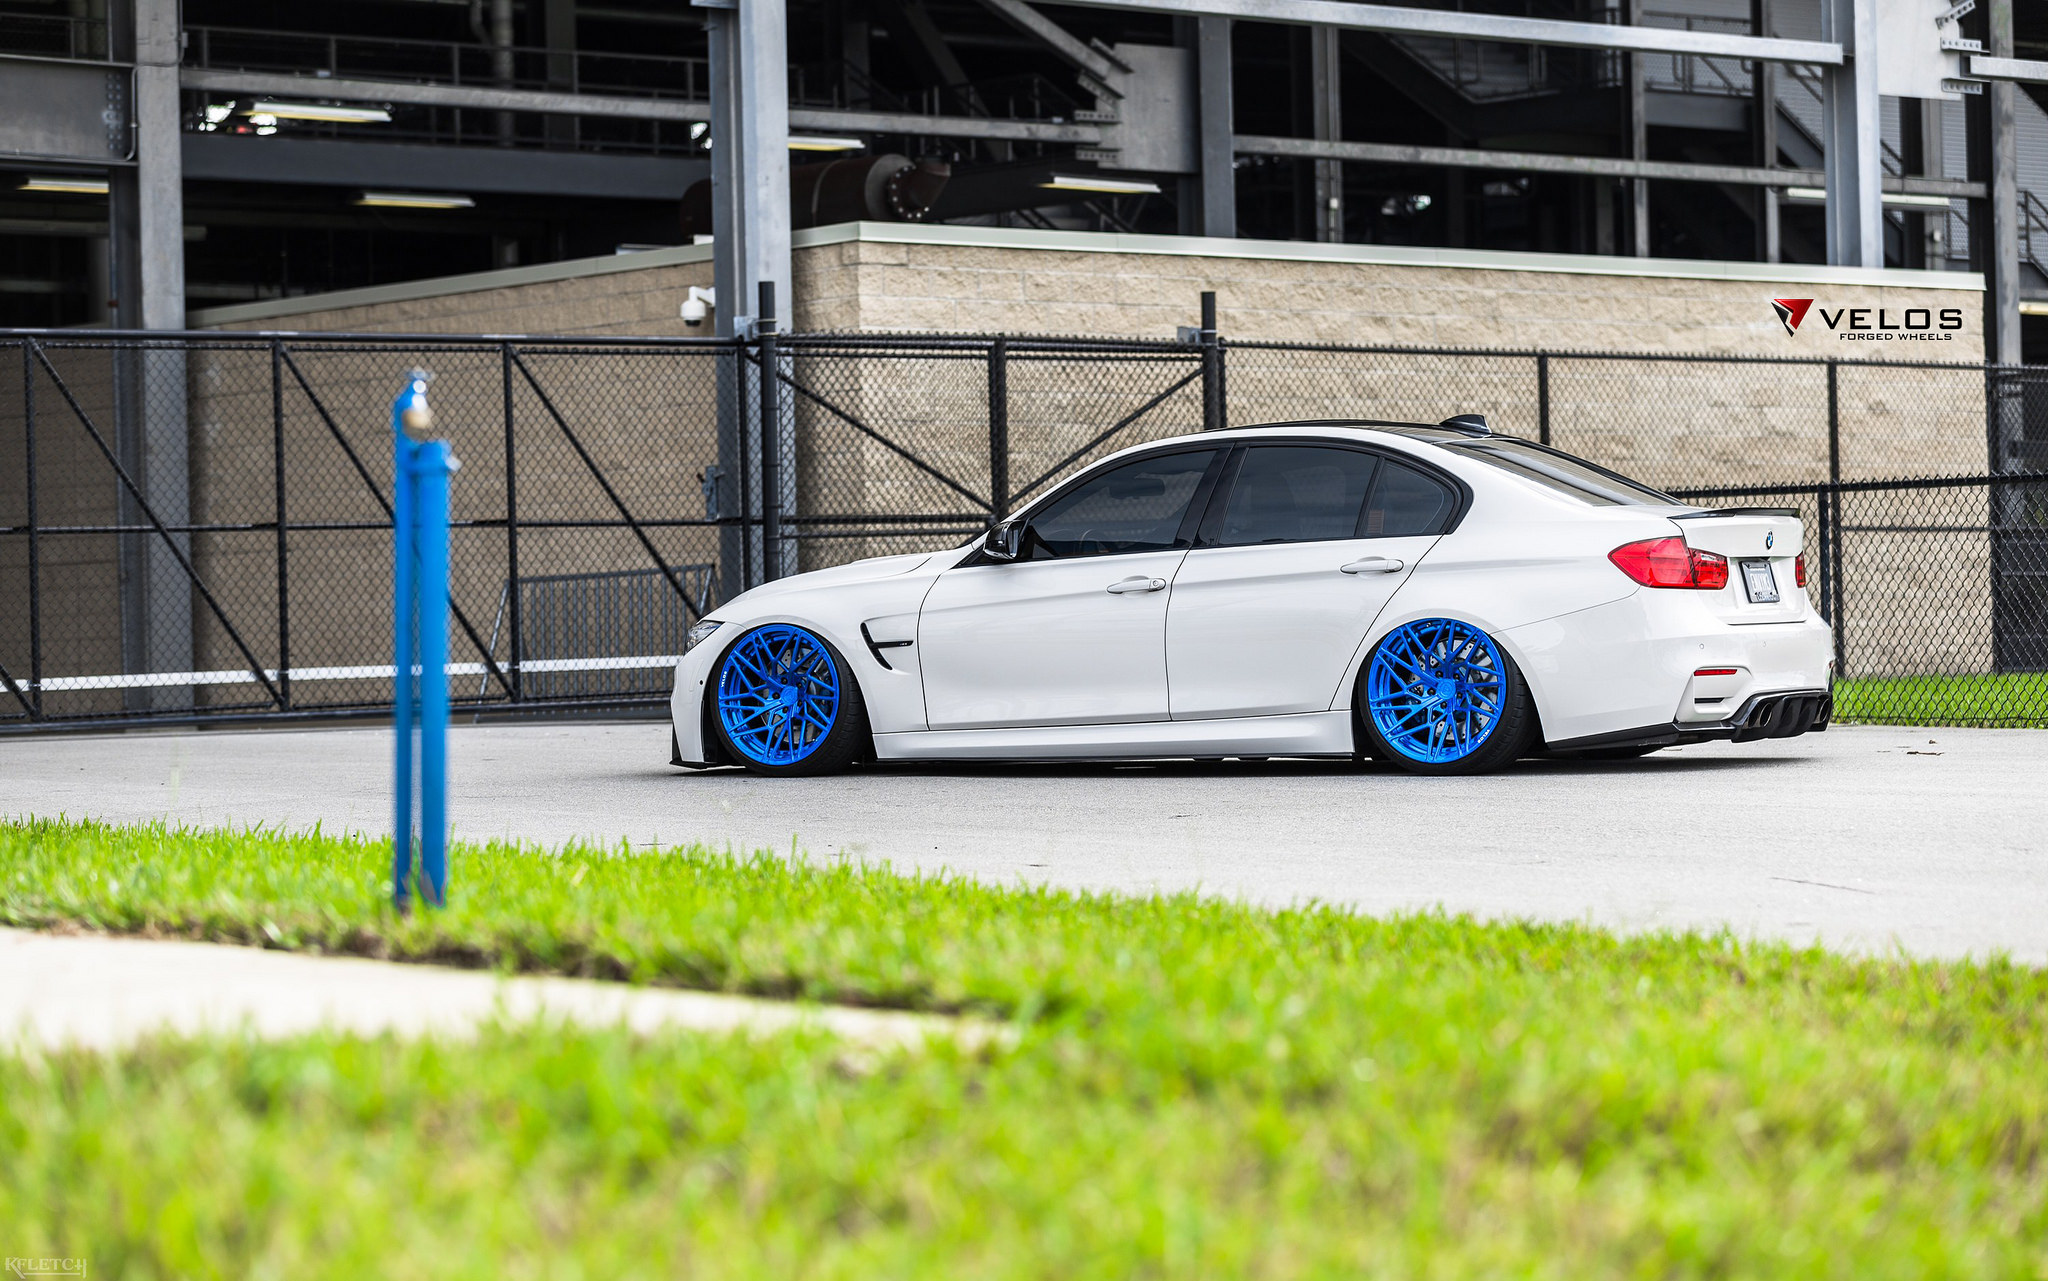 Bmw F80 M3 Bagged On Velos D7 Forged Wheels Velos Designwerks Performance Tuning Autosalon